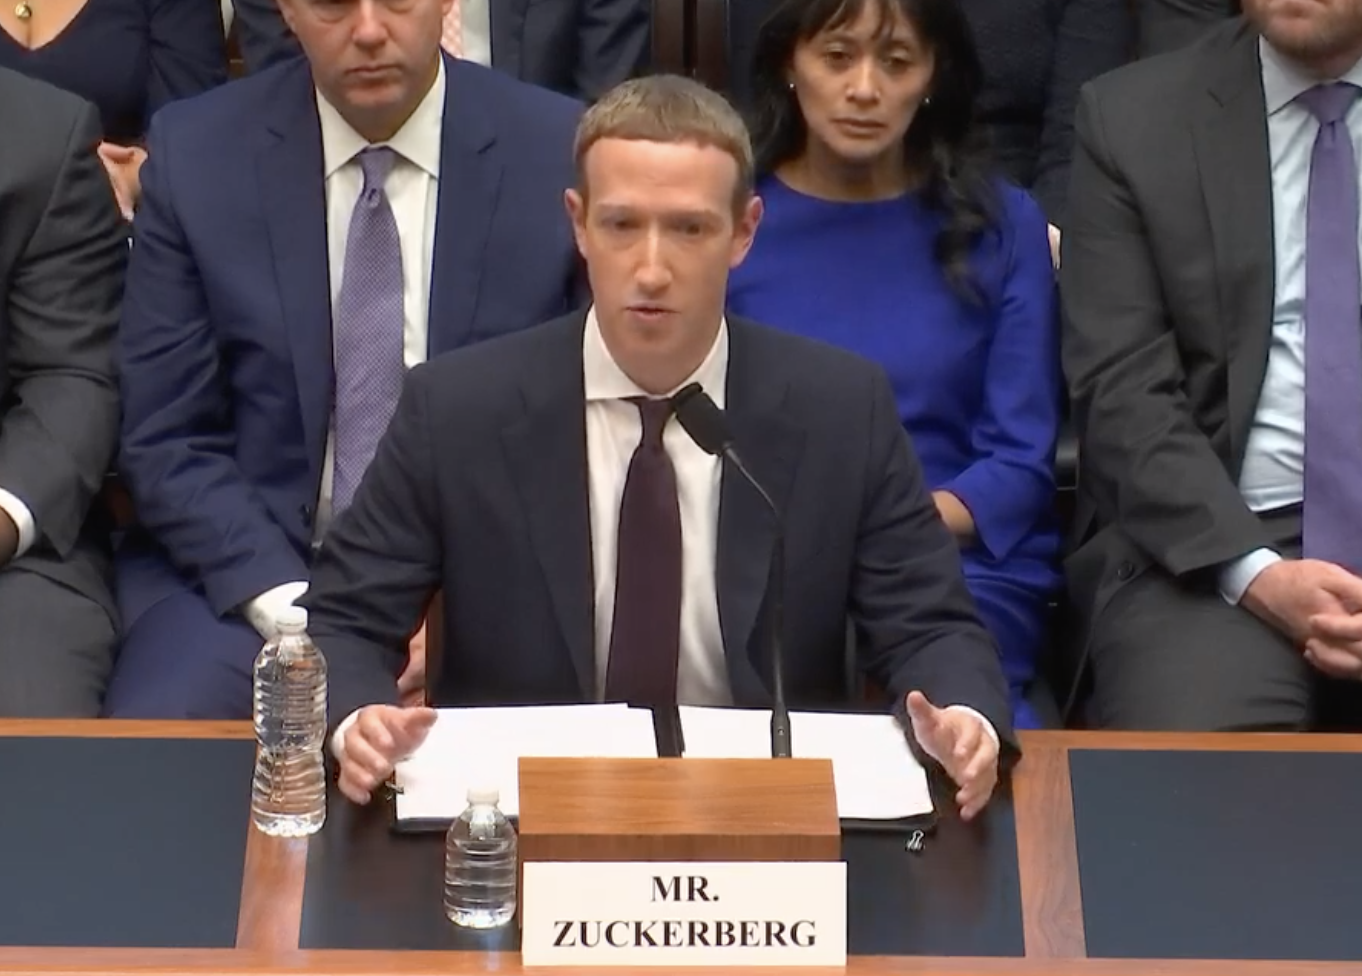 'I actually don't know if Libra's going to work': Congress grills Zuckerberg over Facebook's digital currency plans